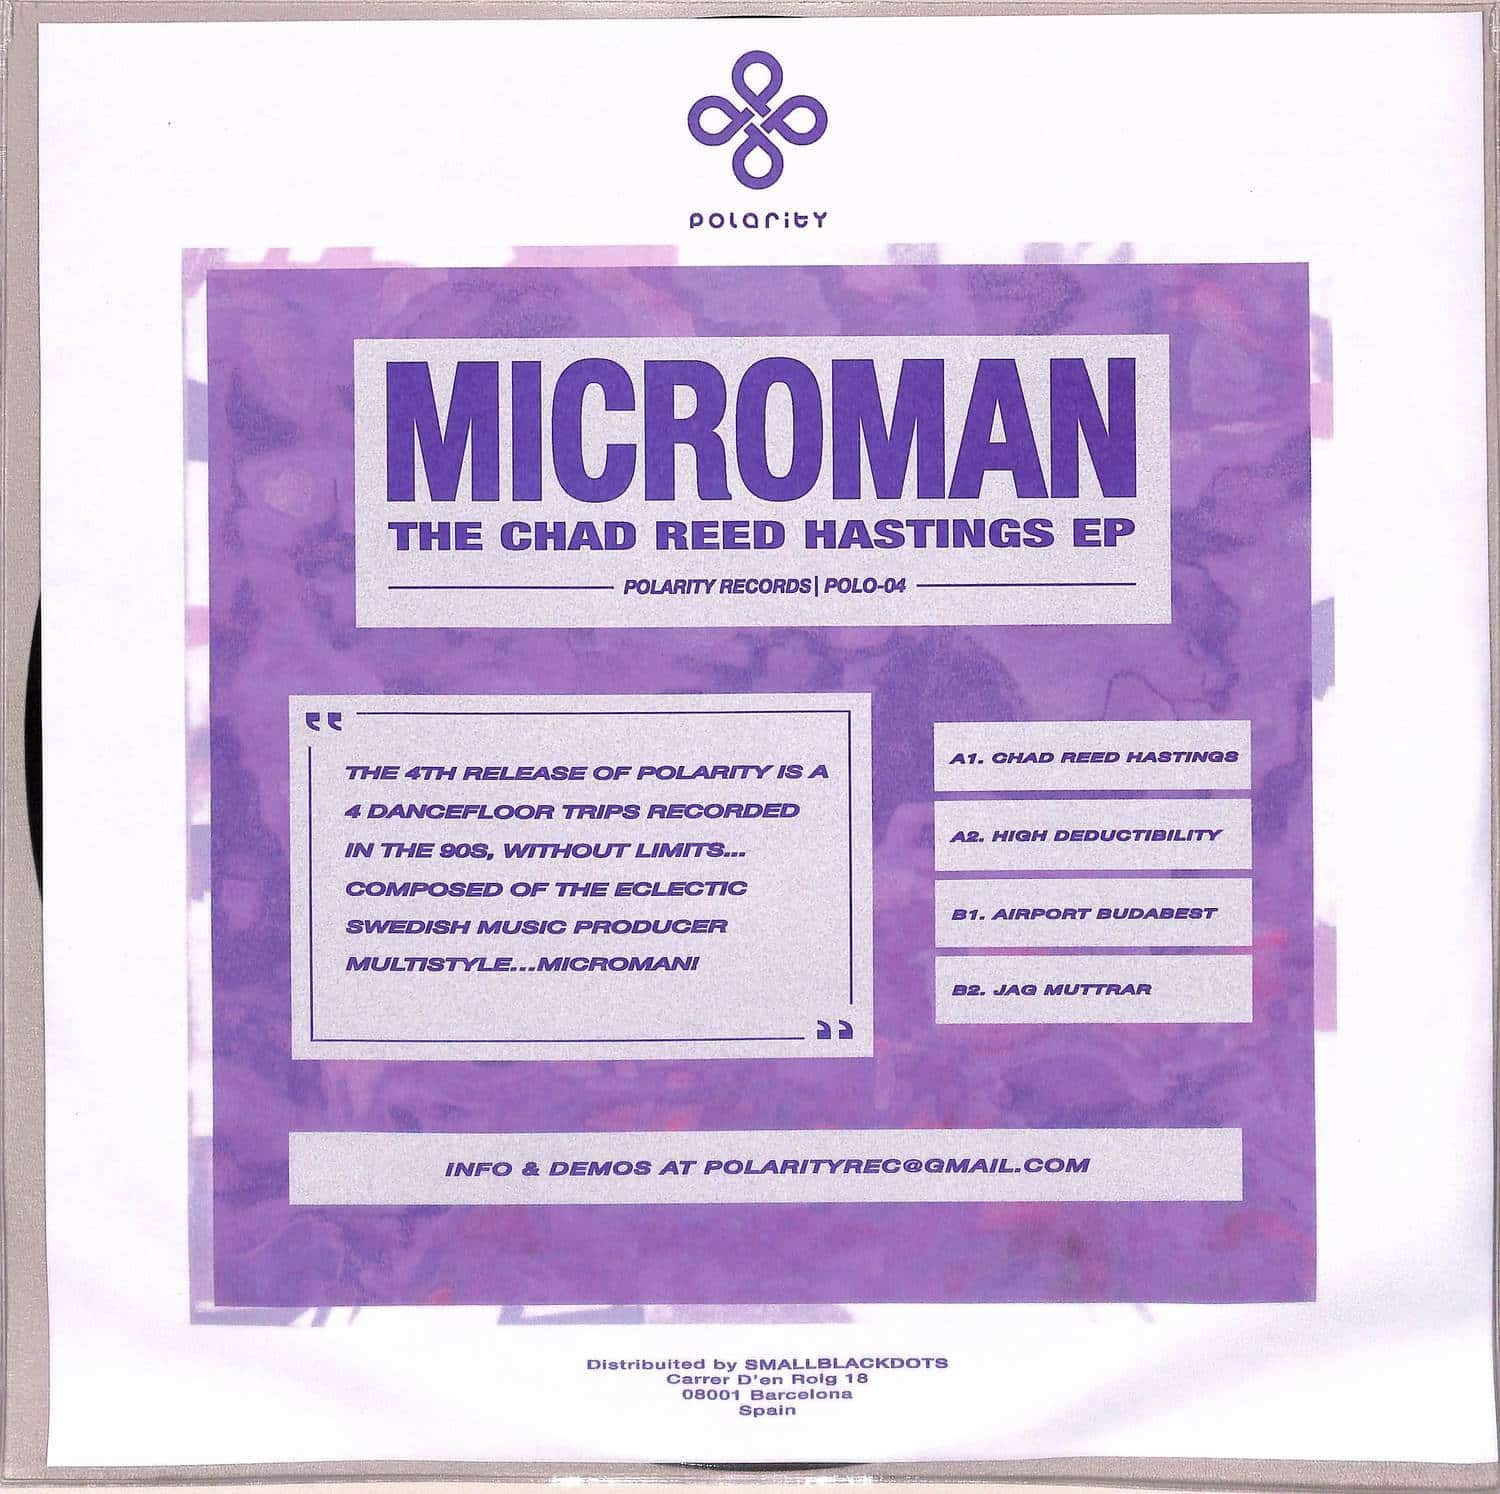 Microman - THE CHAD REED HASTINGS EP